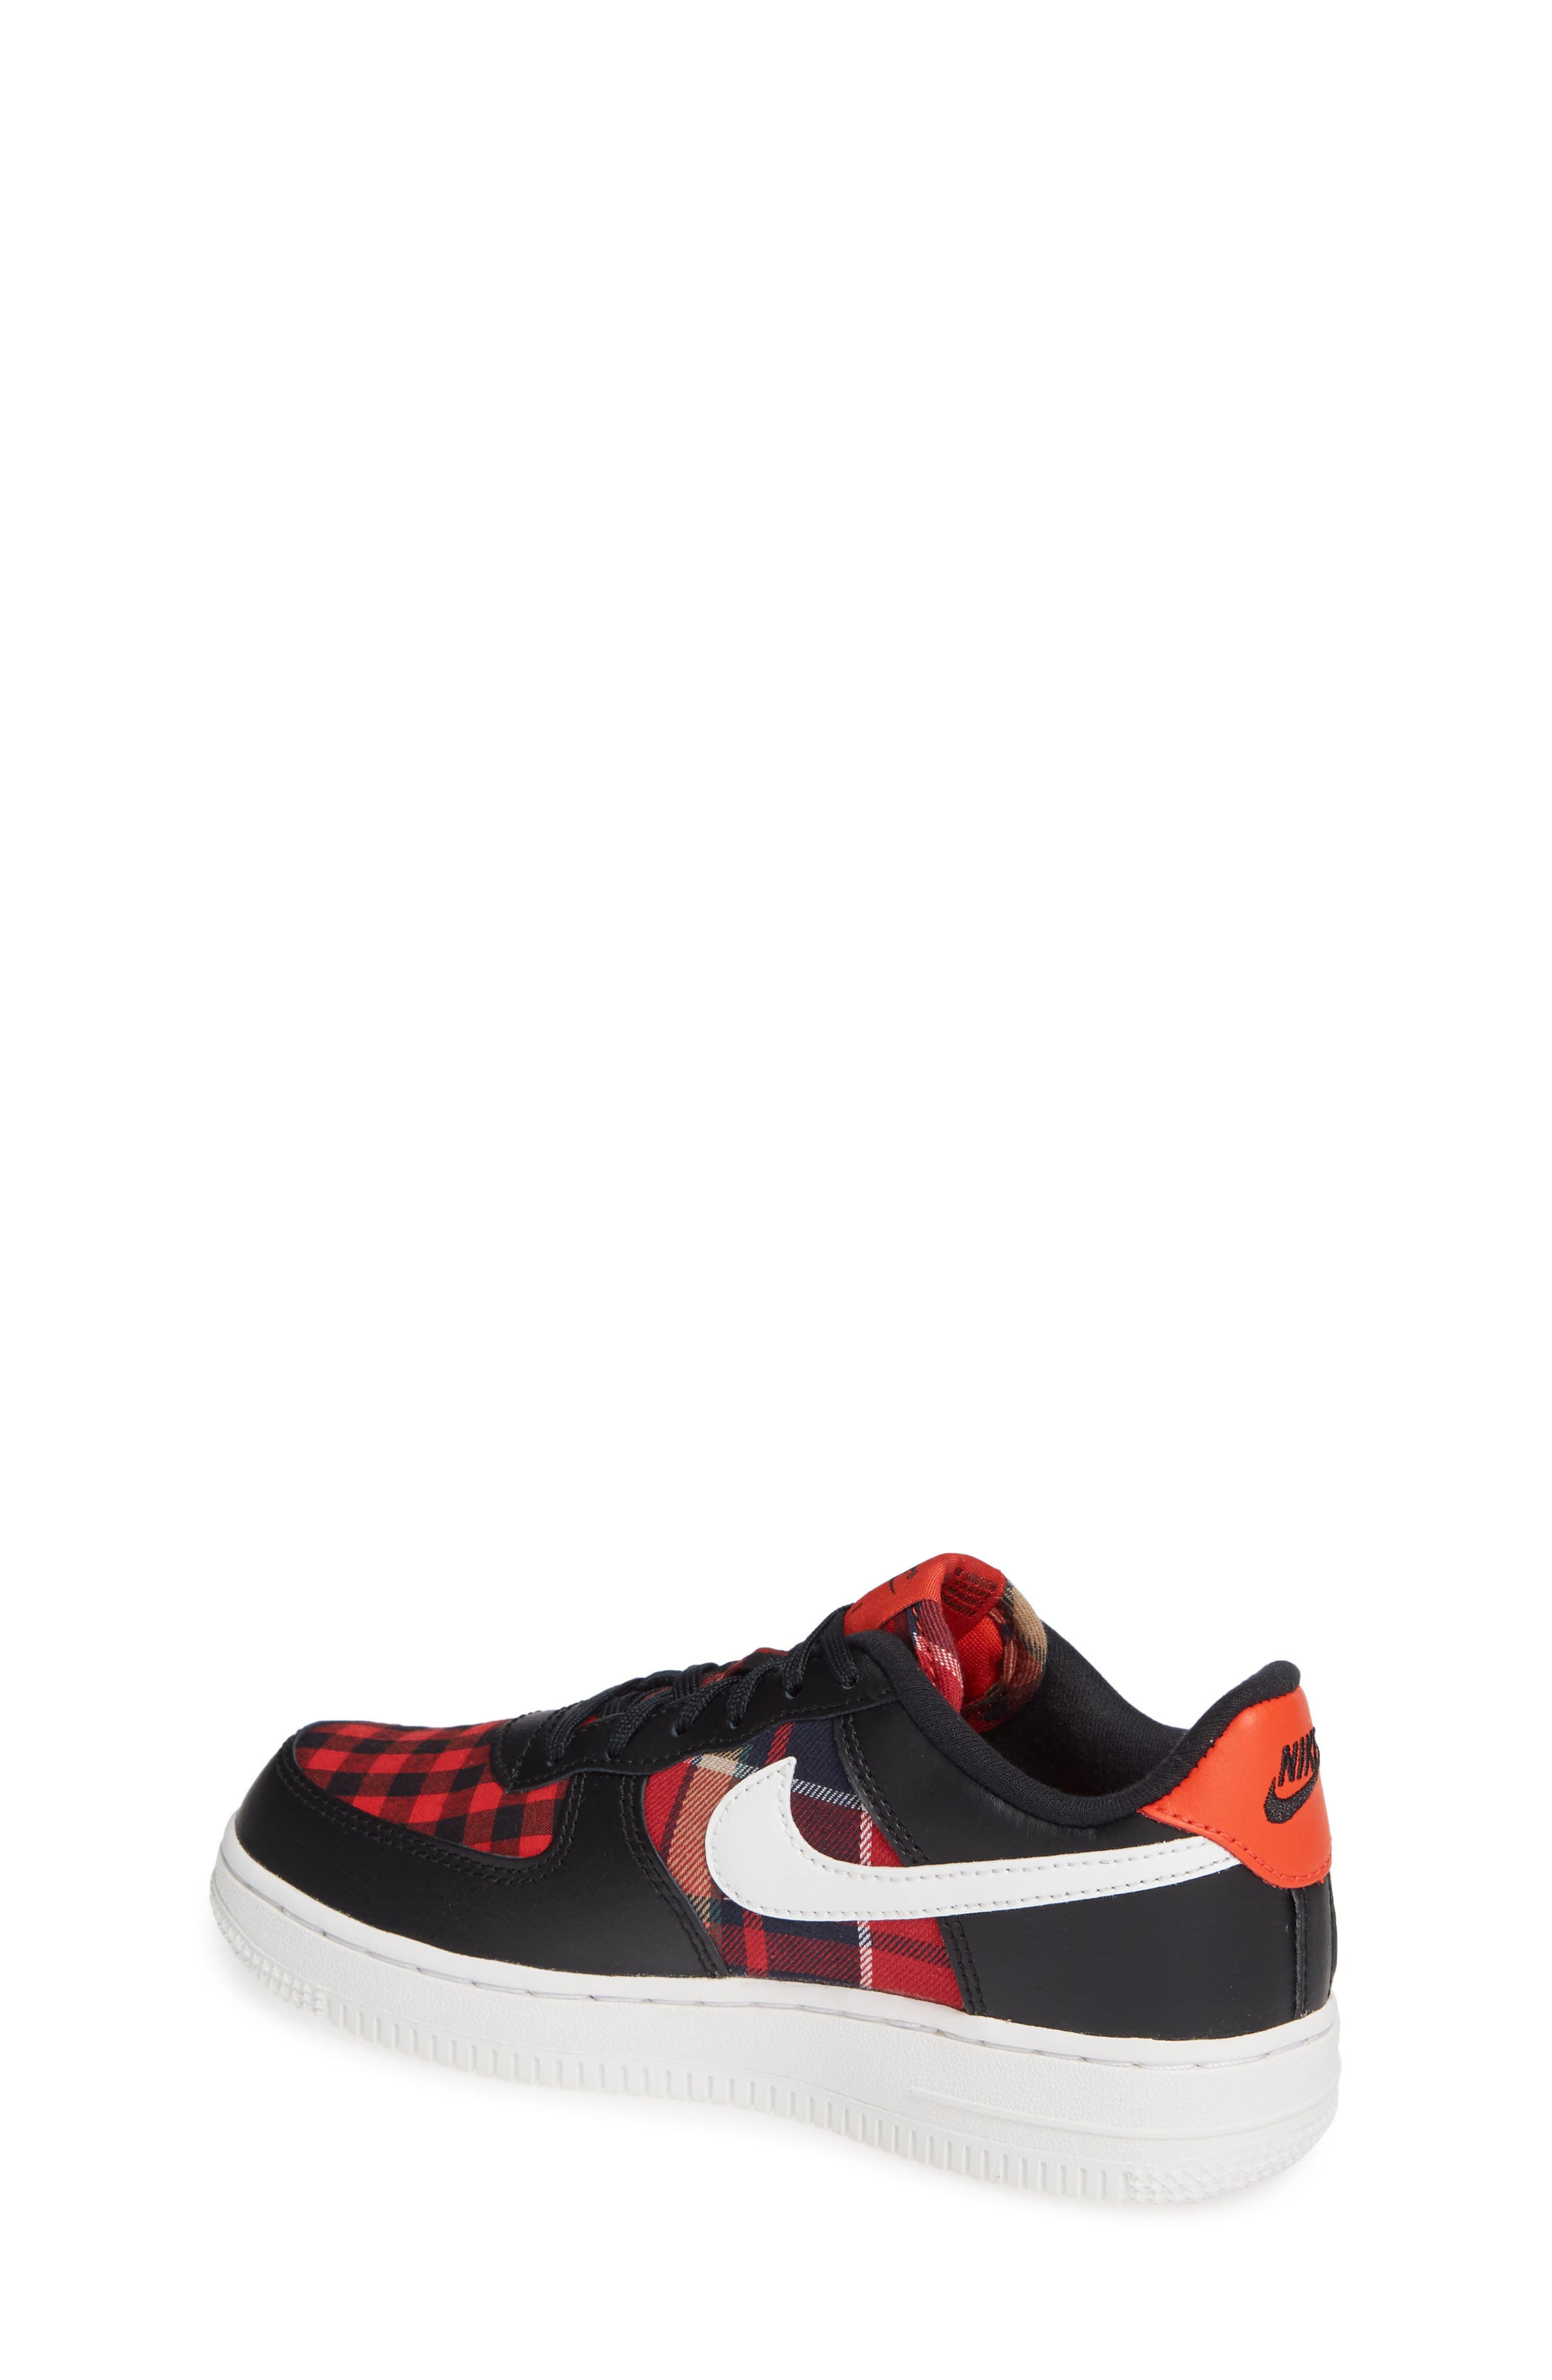 Air Force 1 LV8 Sneaker,                             Alternate thumbnail 2, color,                             BLACK SUMMIT WHITE RED